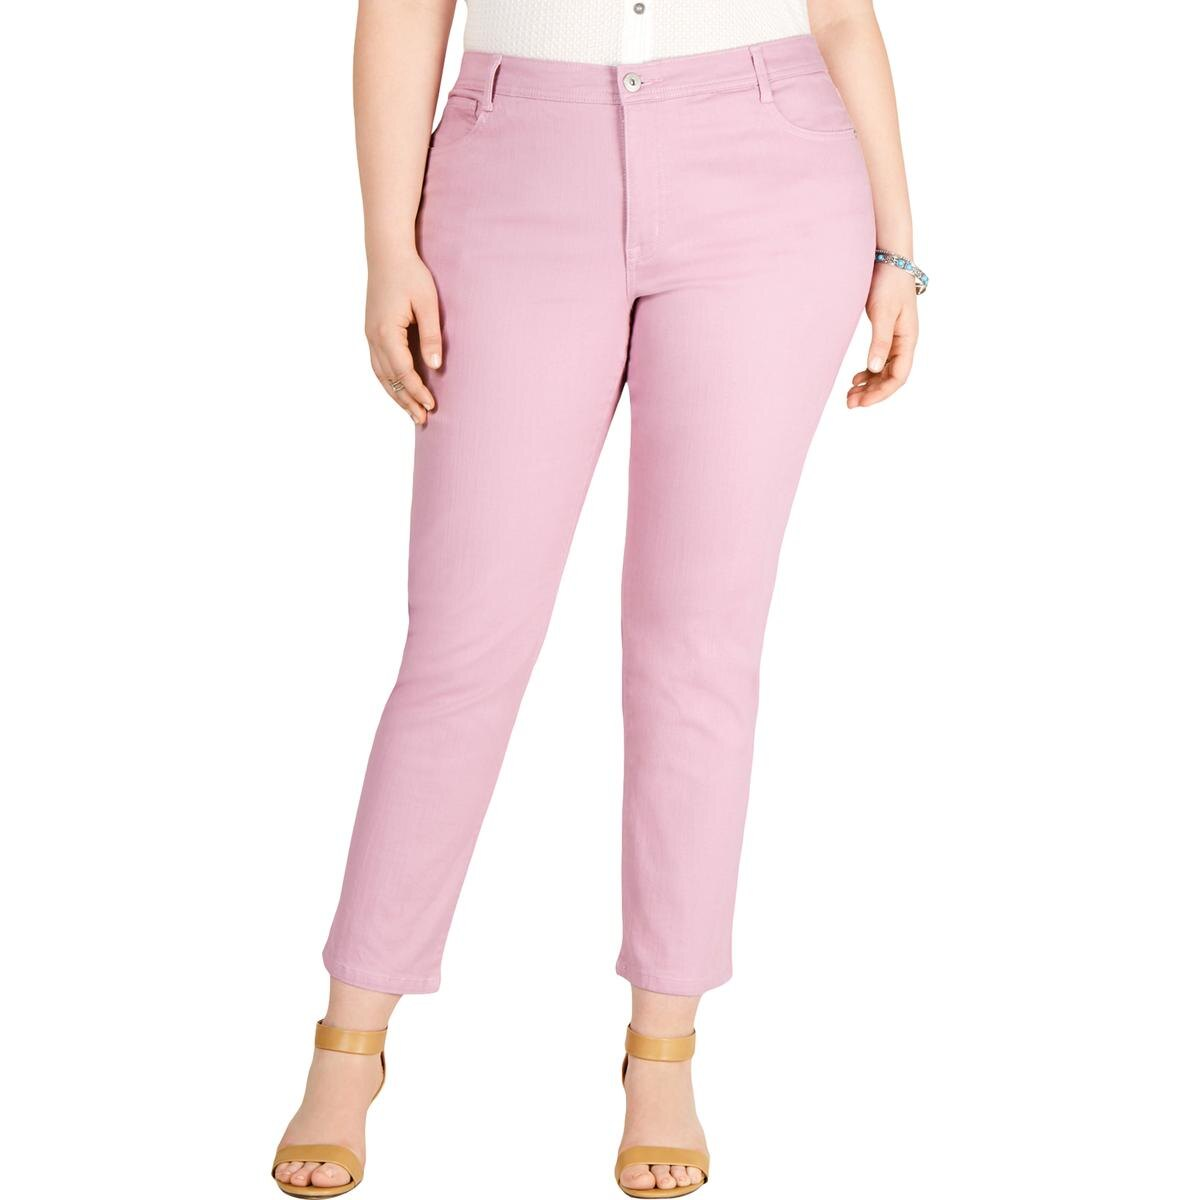 Style & Co. Womens Plus Slim Fit Tummy Control Slim Leg Jeans